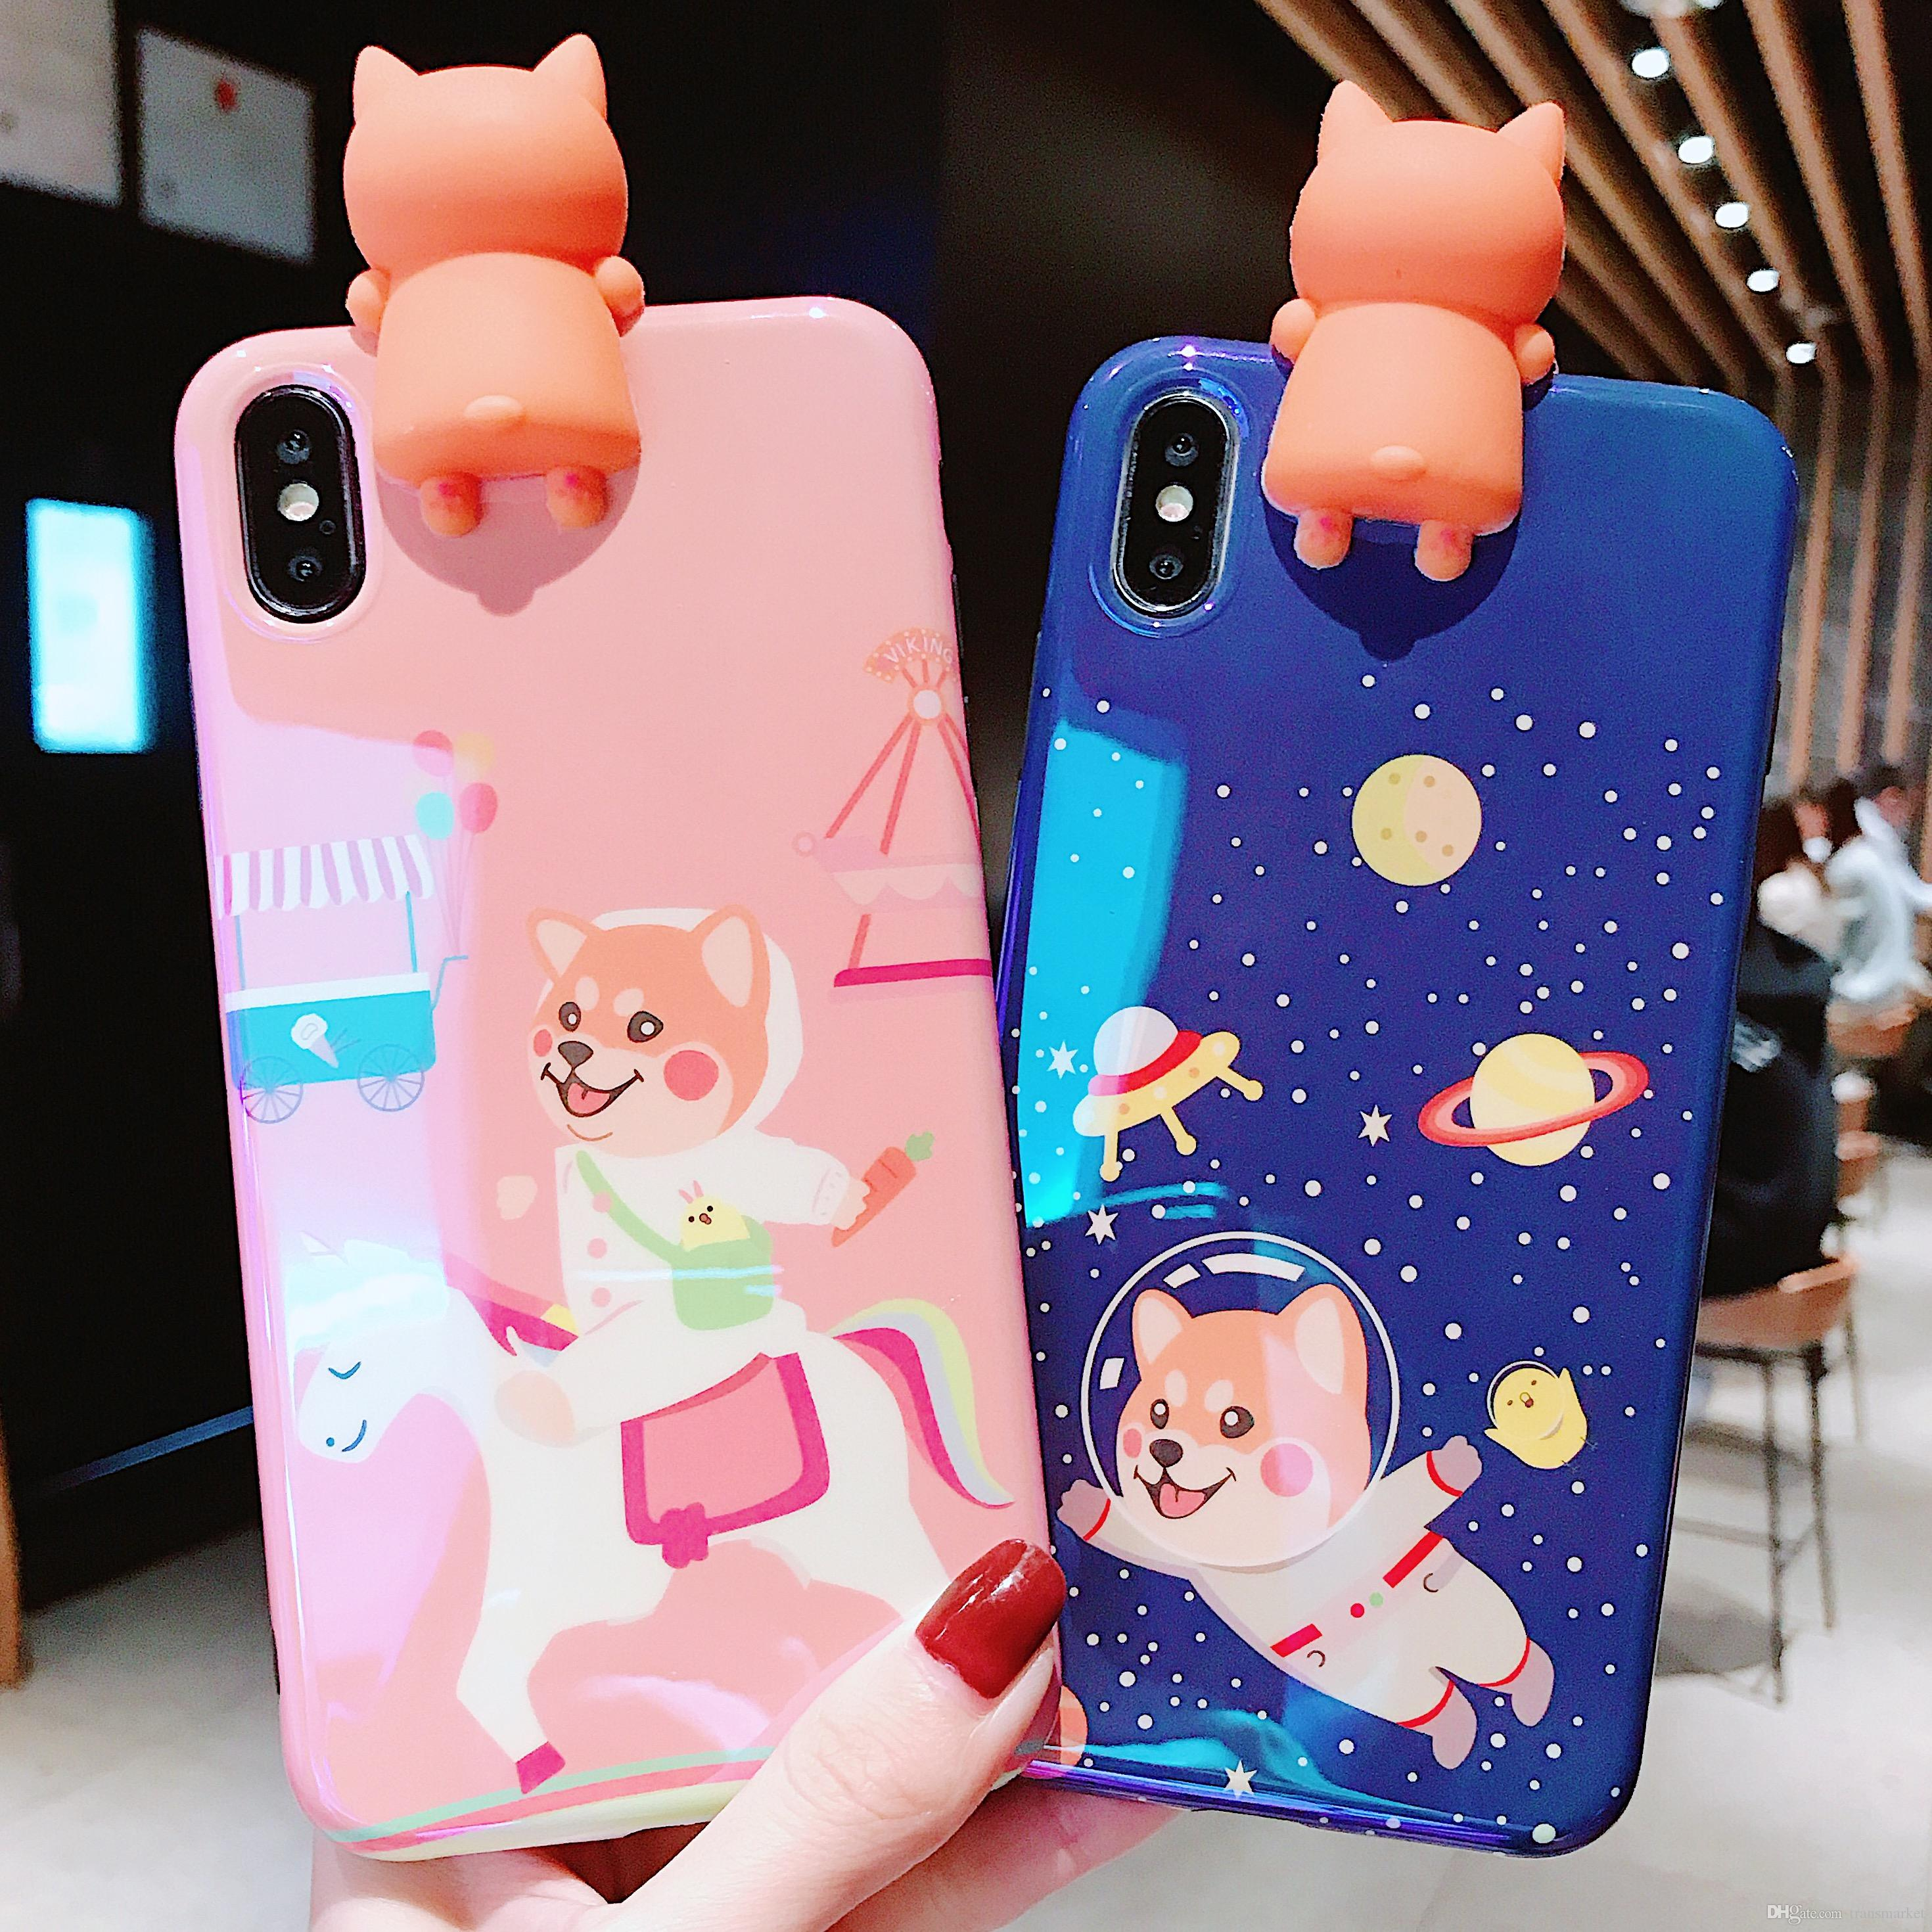 Fashionable Blu-ray Dog Pattern Phone Case with Kneeling Dog Mobile Phone  Cover For Iphone Xs Max/XS/XR/X